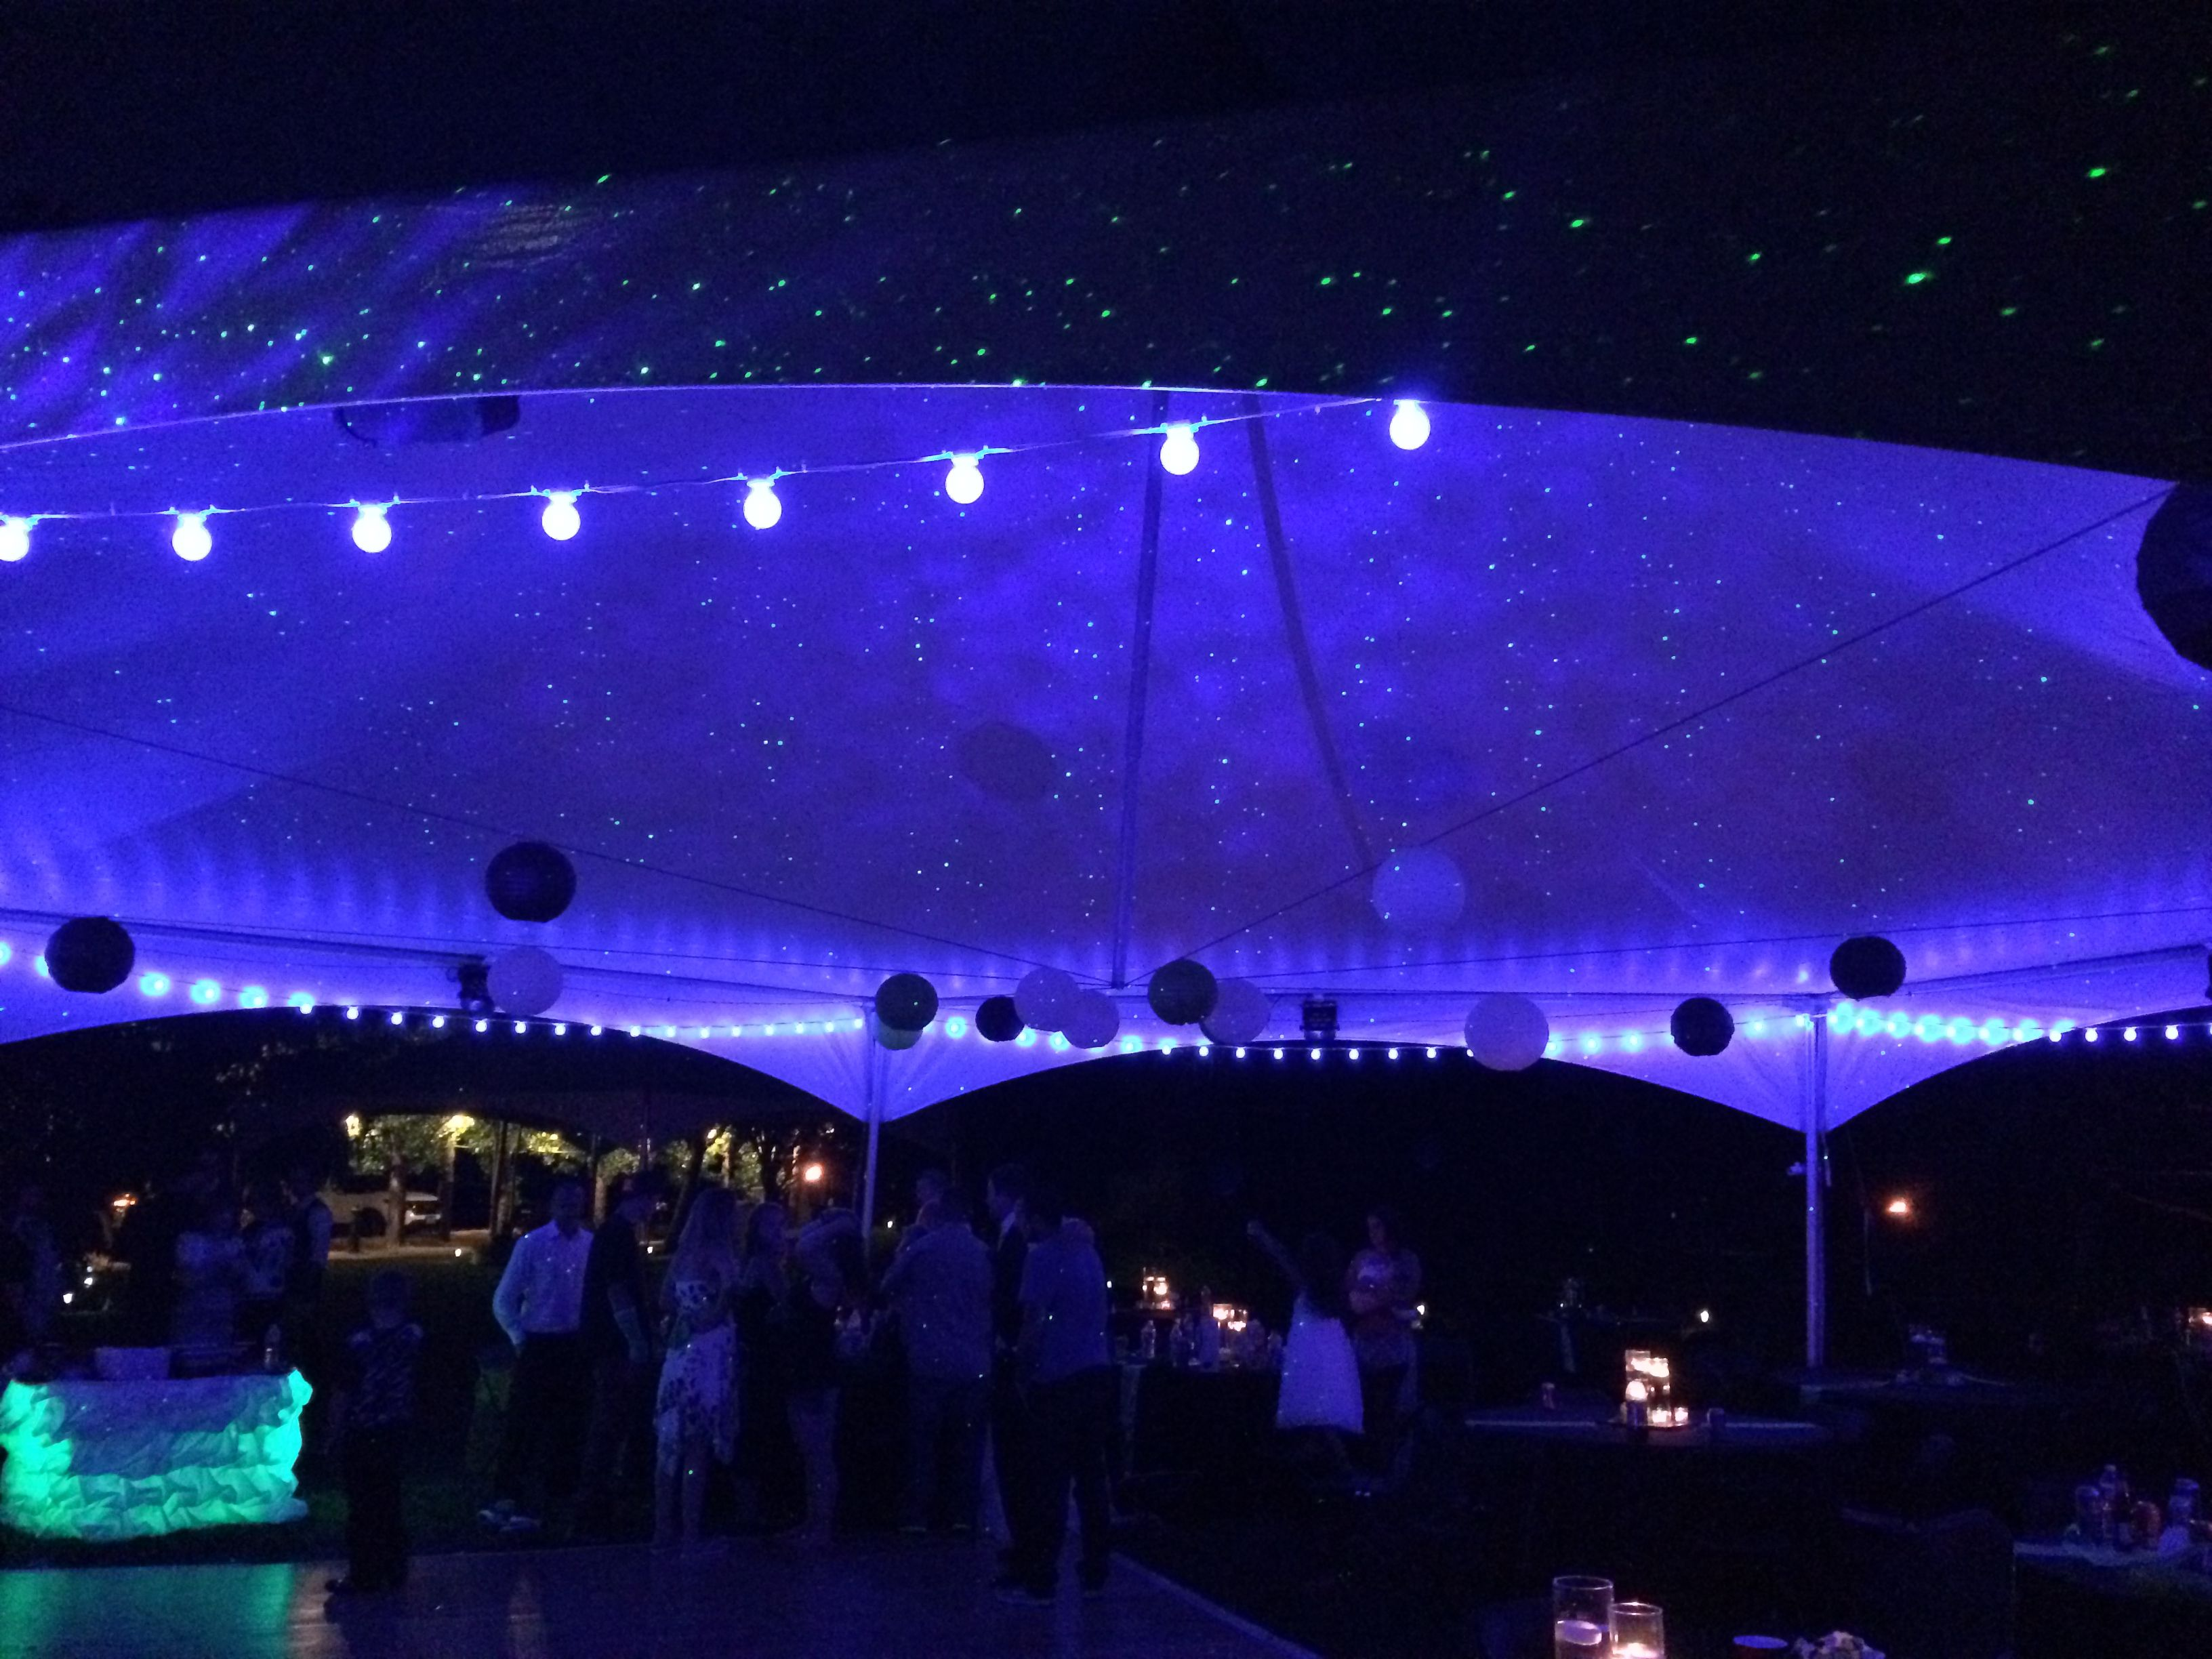 bistro lighting with the starry night effect in the hexagon canopy